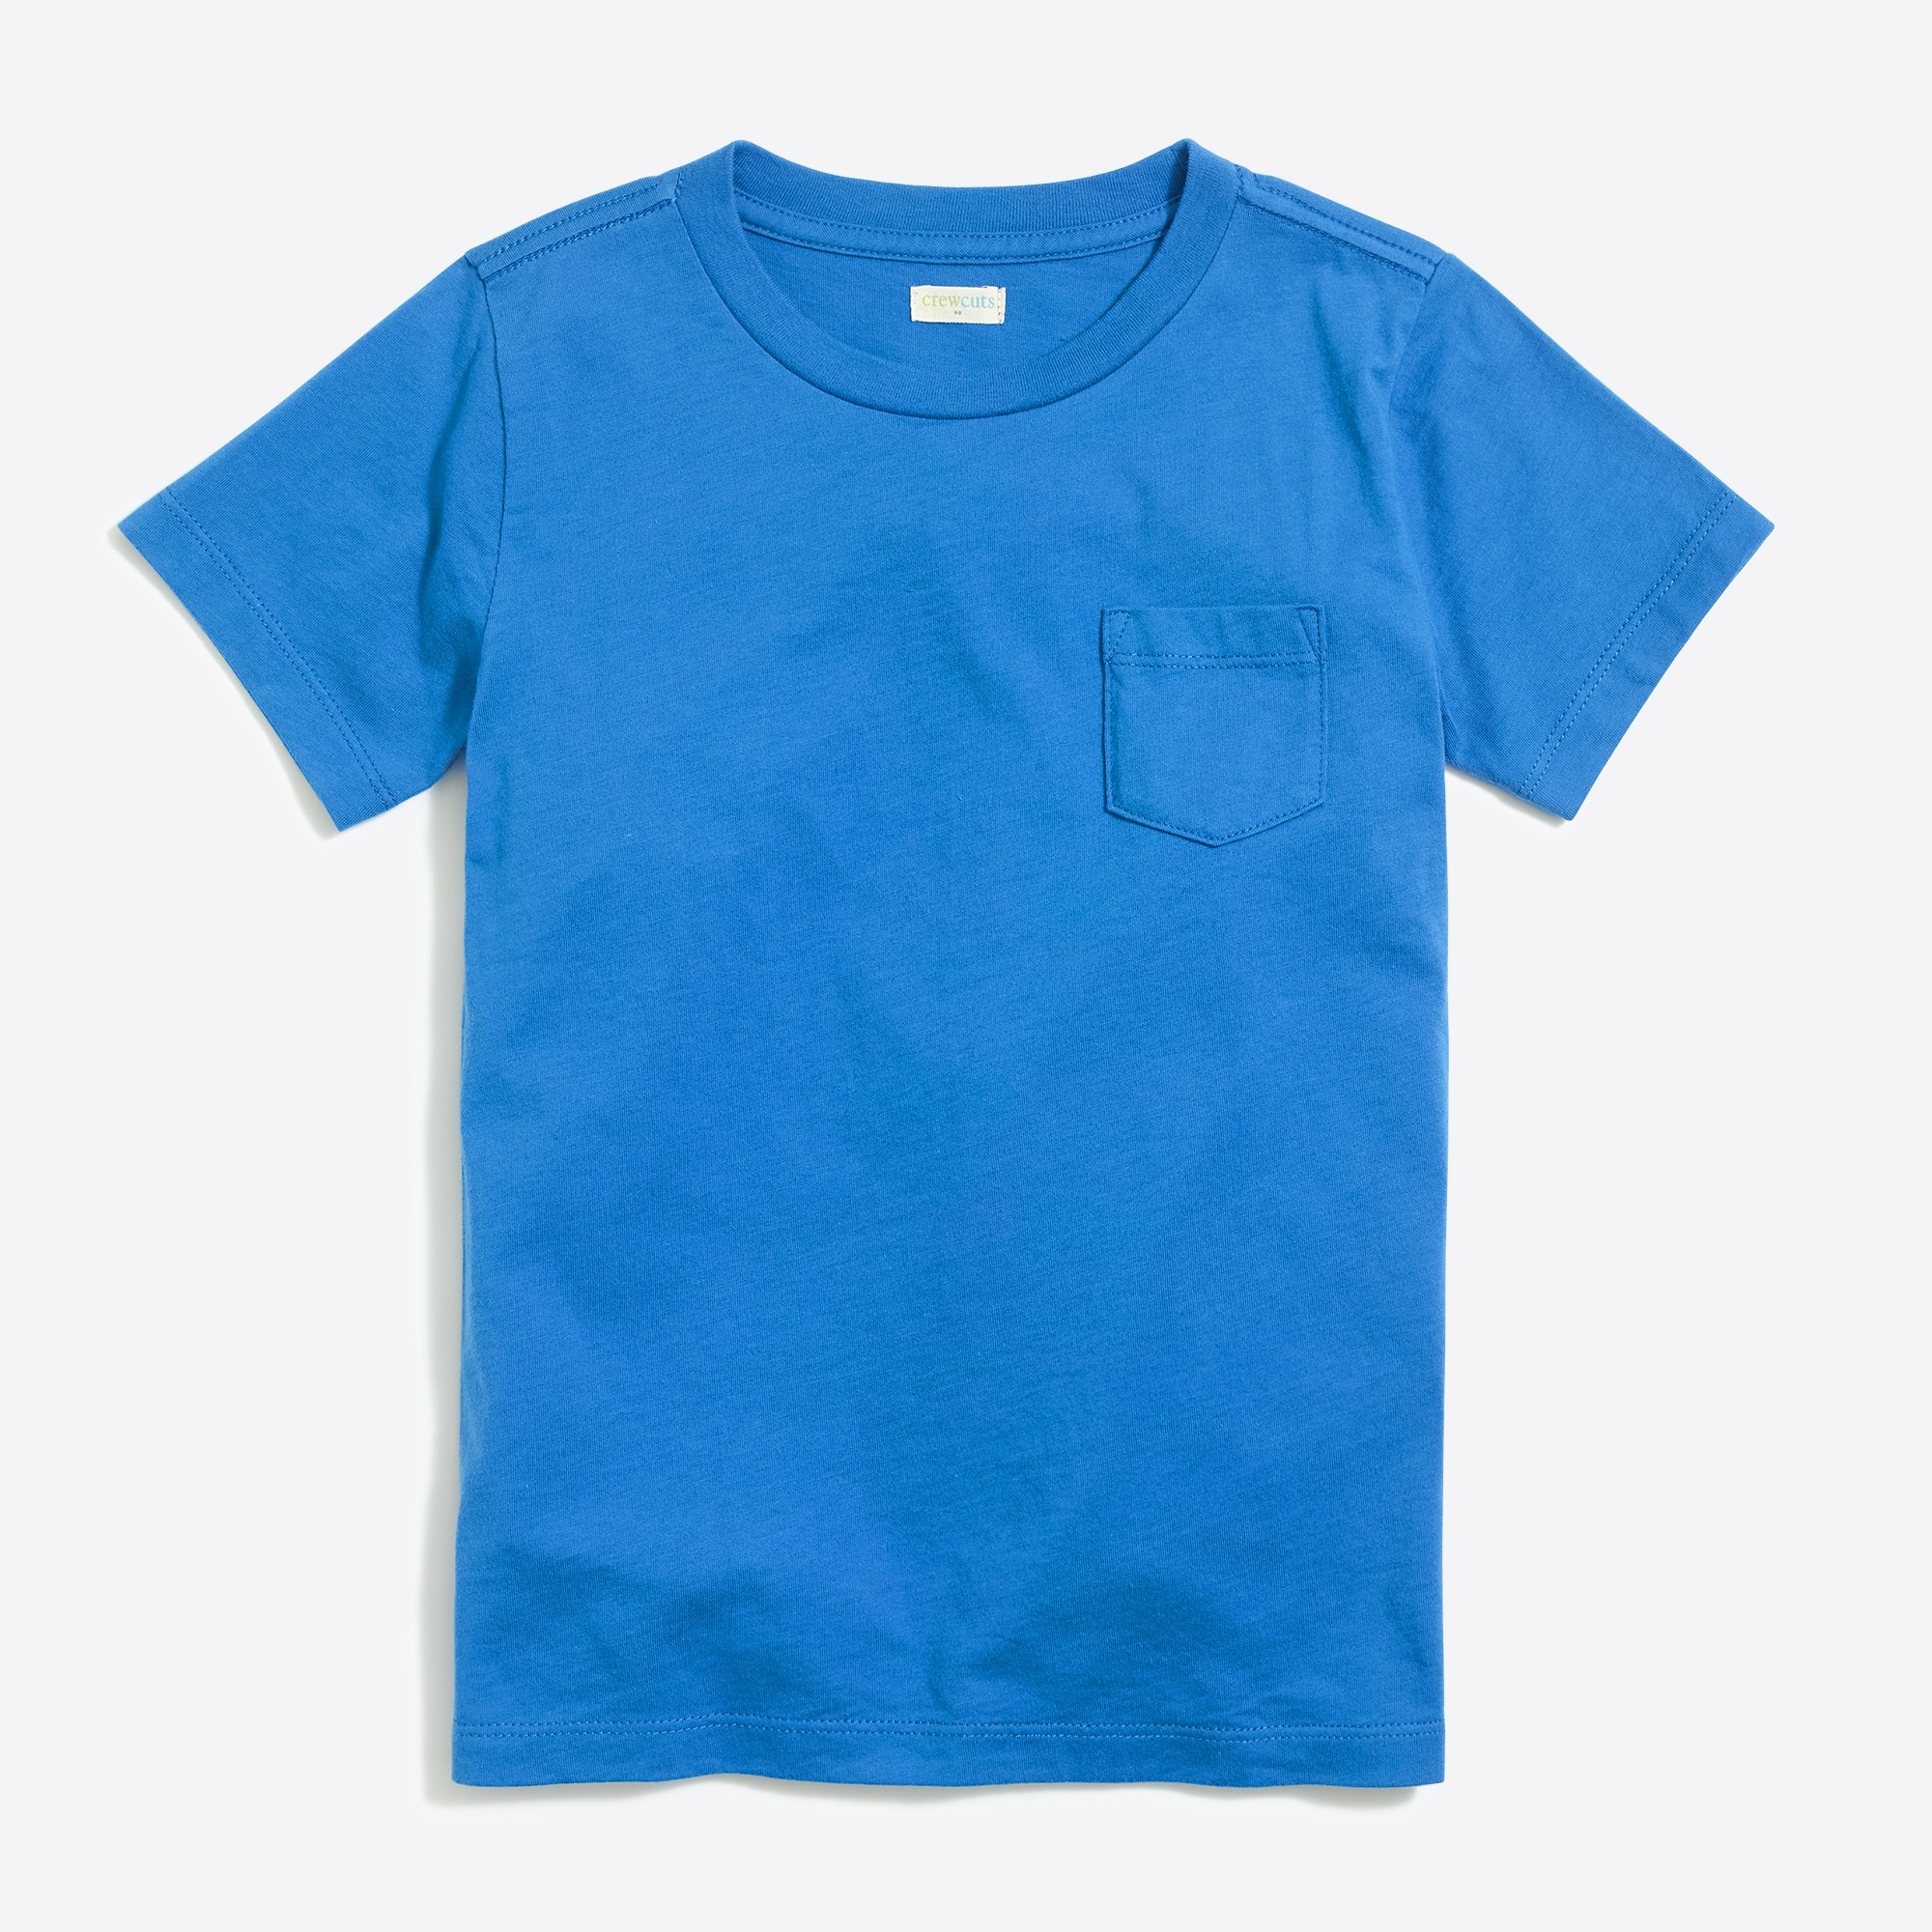 Boys' short-sleeve jersey pocket T-shirt factoryboys knits & t-shirts c